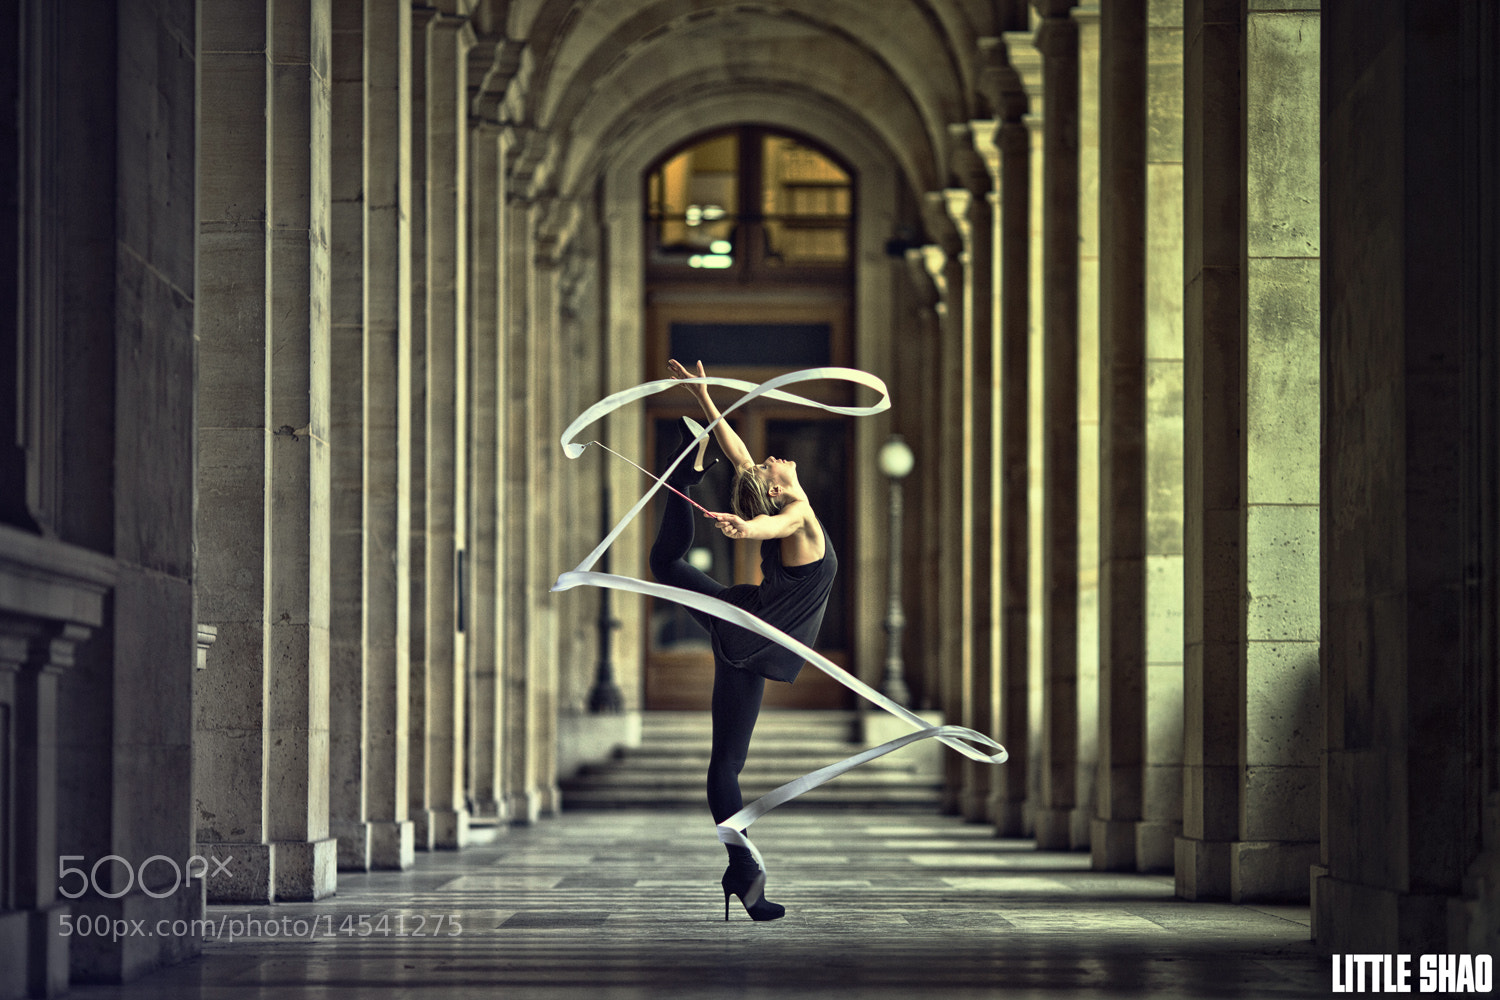 Photograph Nathalie Fauquette by Little Shao by Little Shao on 500px